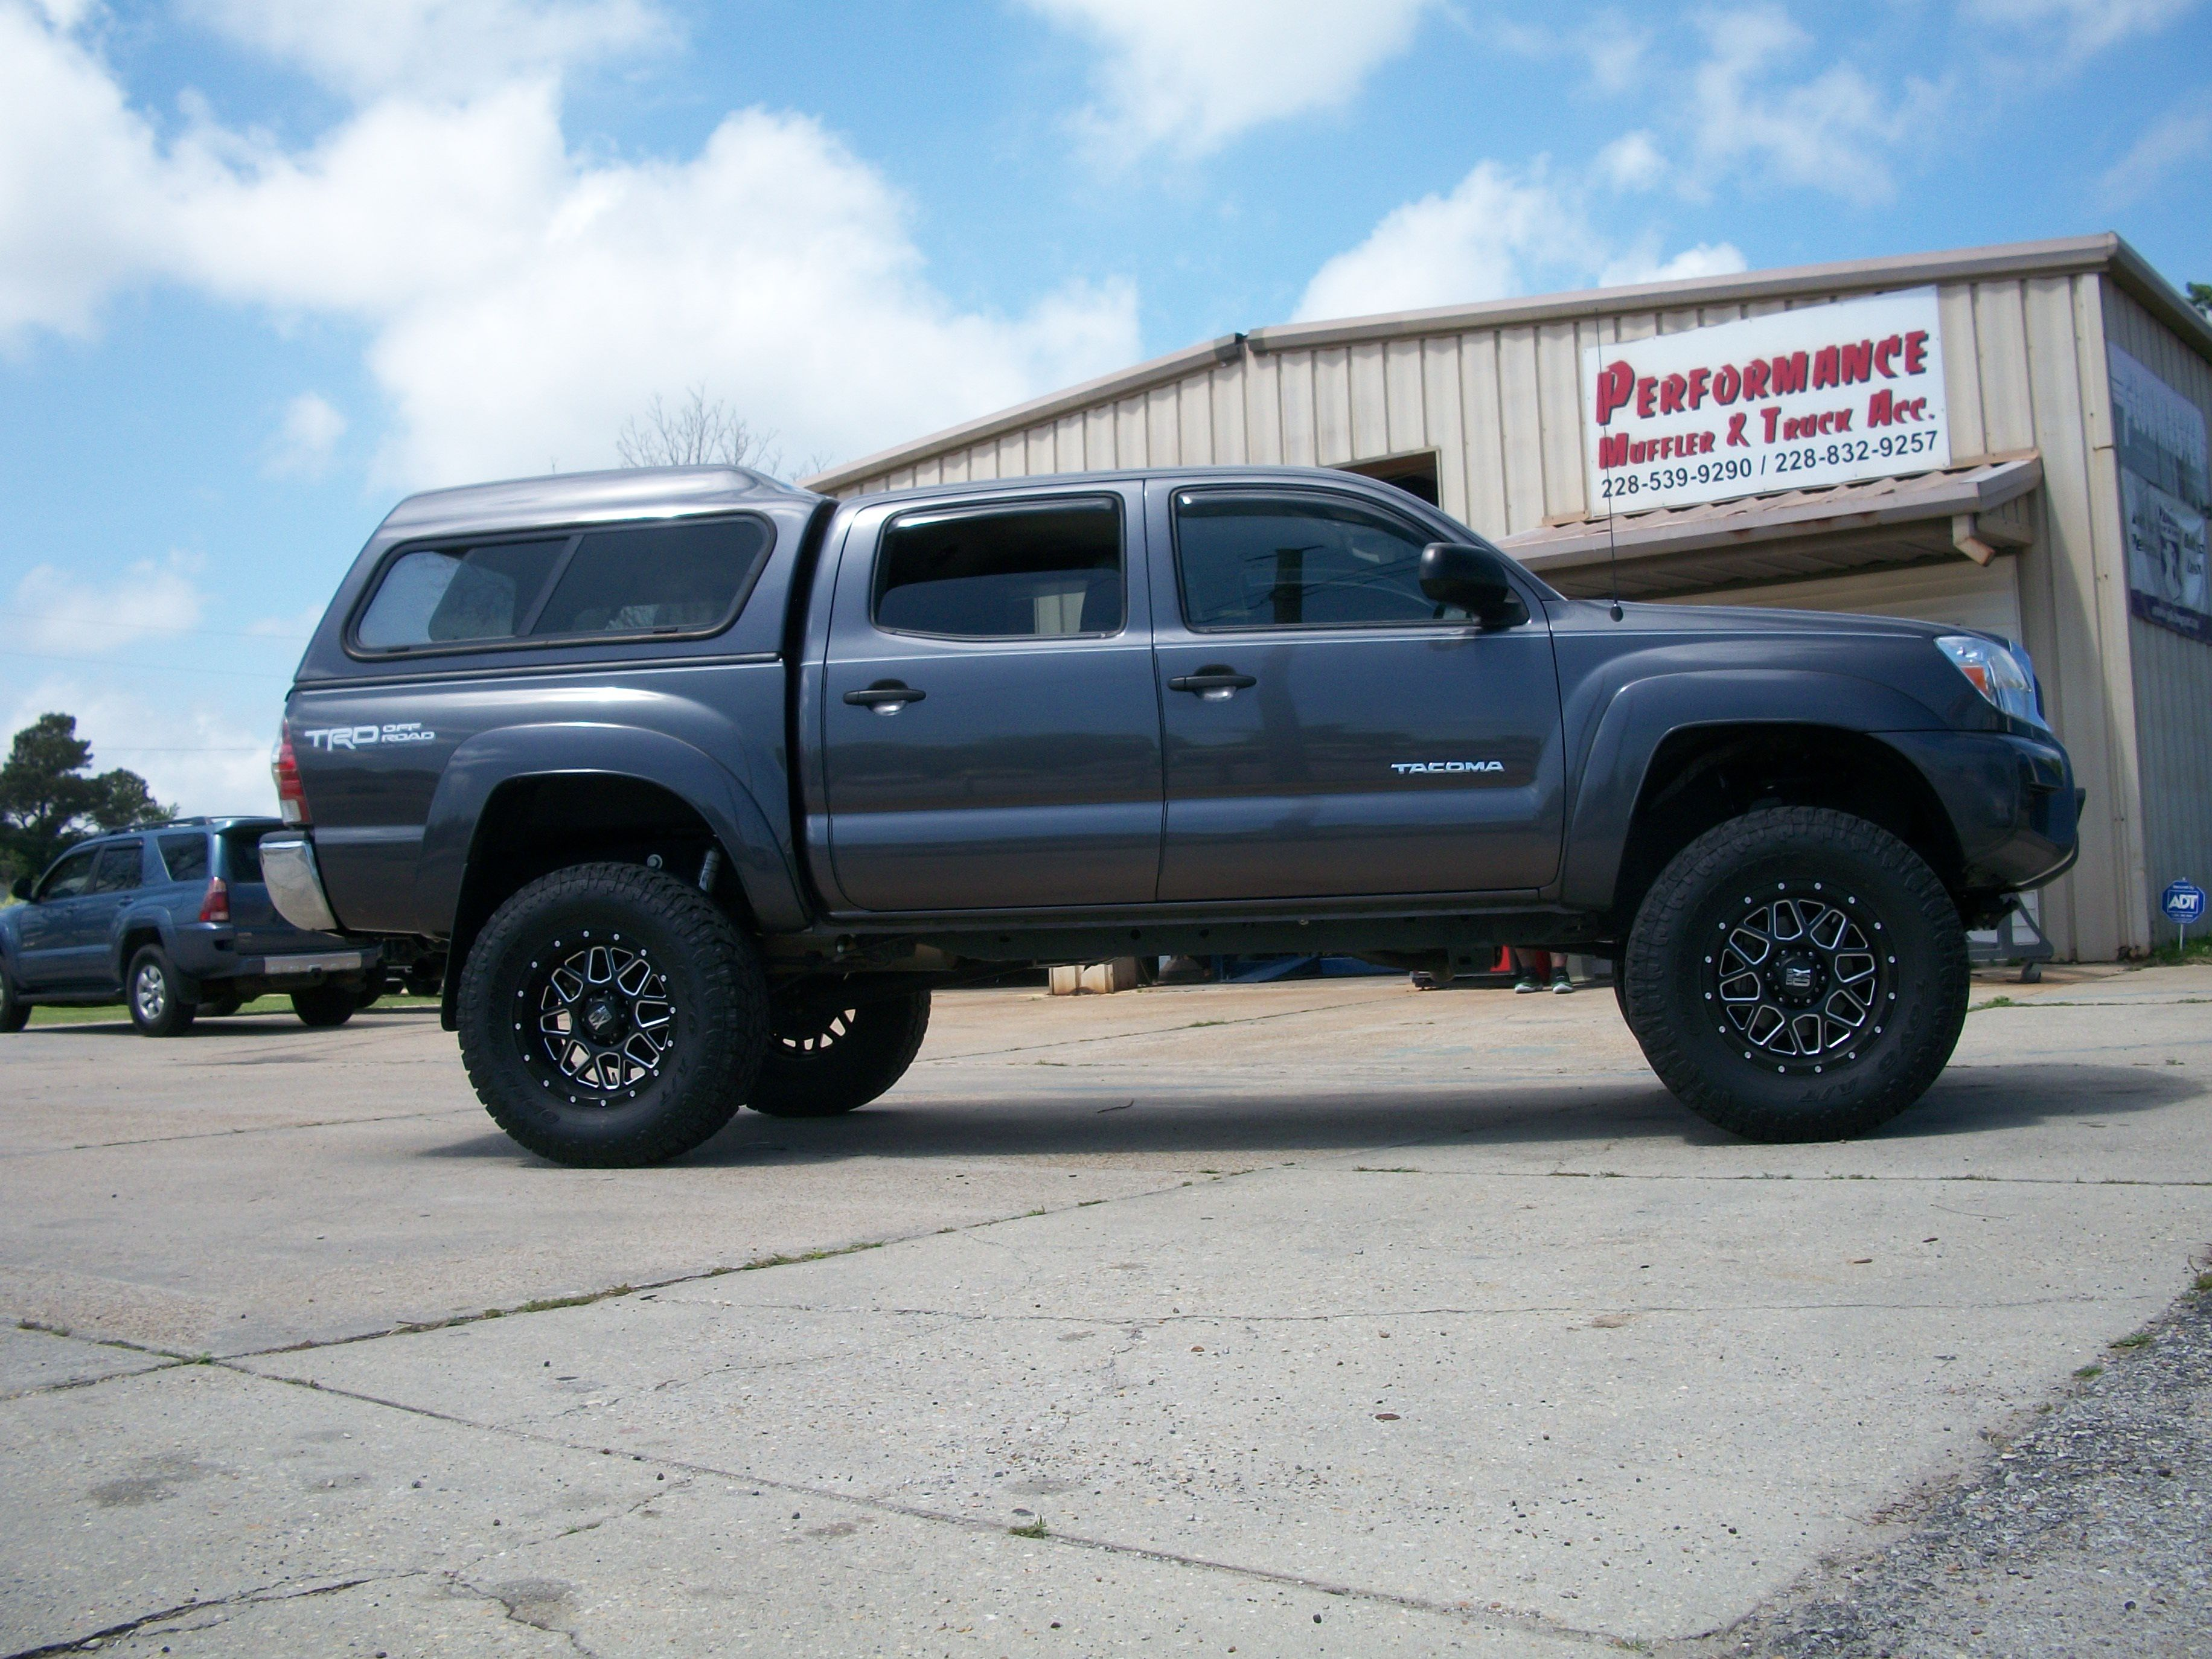 6 Bds Suspension W Fox 2 0 Rear Shocks 35x12 50r18 Toyo Open Country At Ii On 18x9 Xd820 Black Milled Lifted Trucks Suv Vehicles